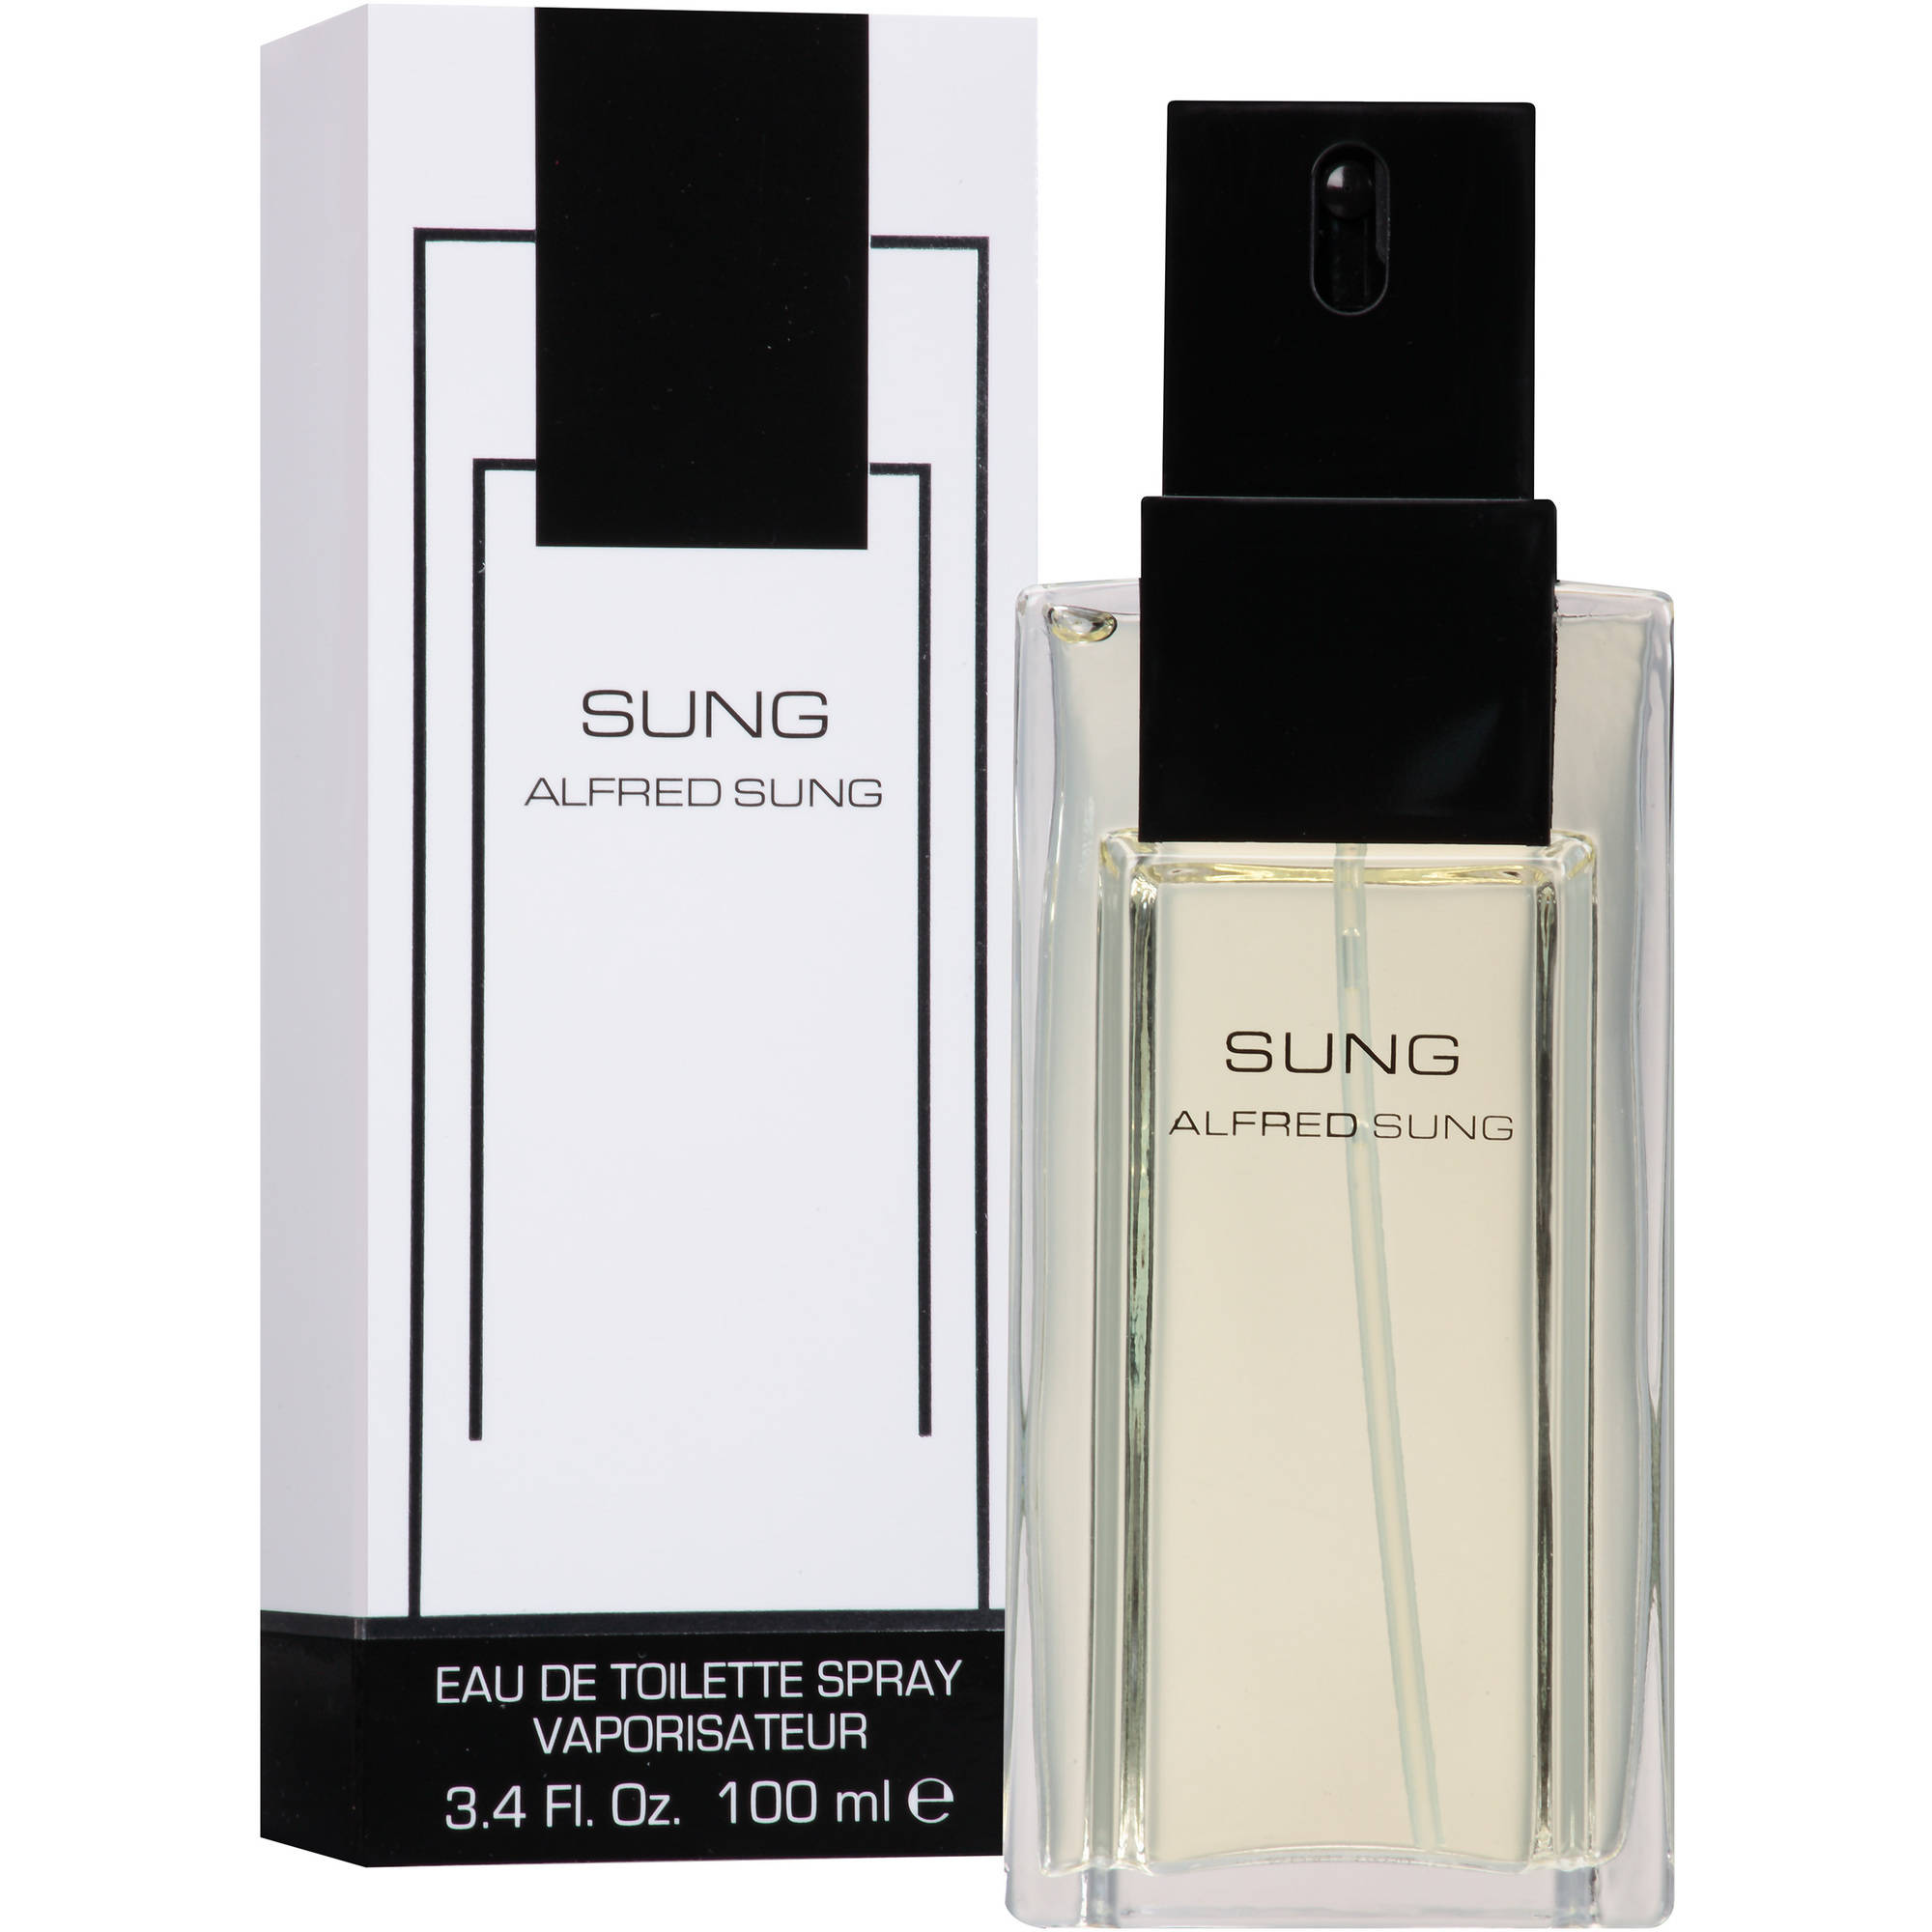 Alfred Sung Eau de Toilette Spray for Women, 3.4 fl oz